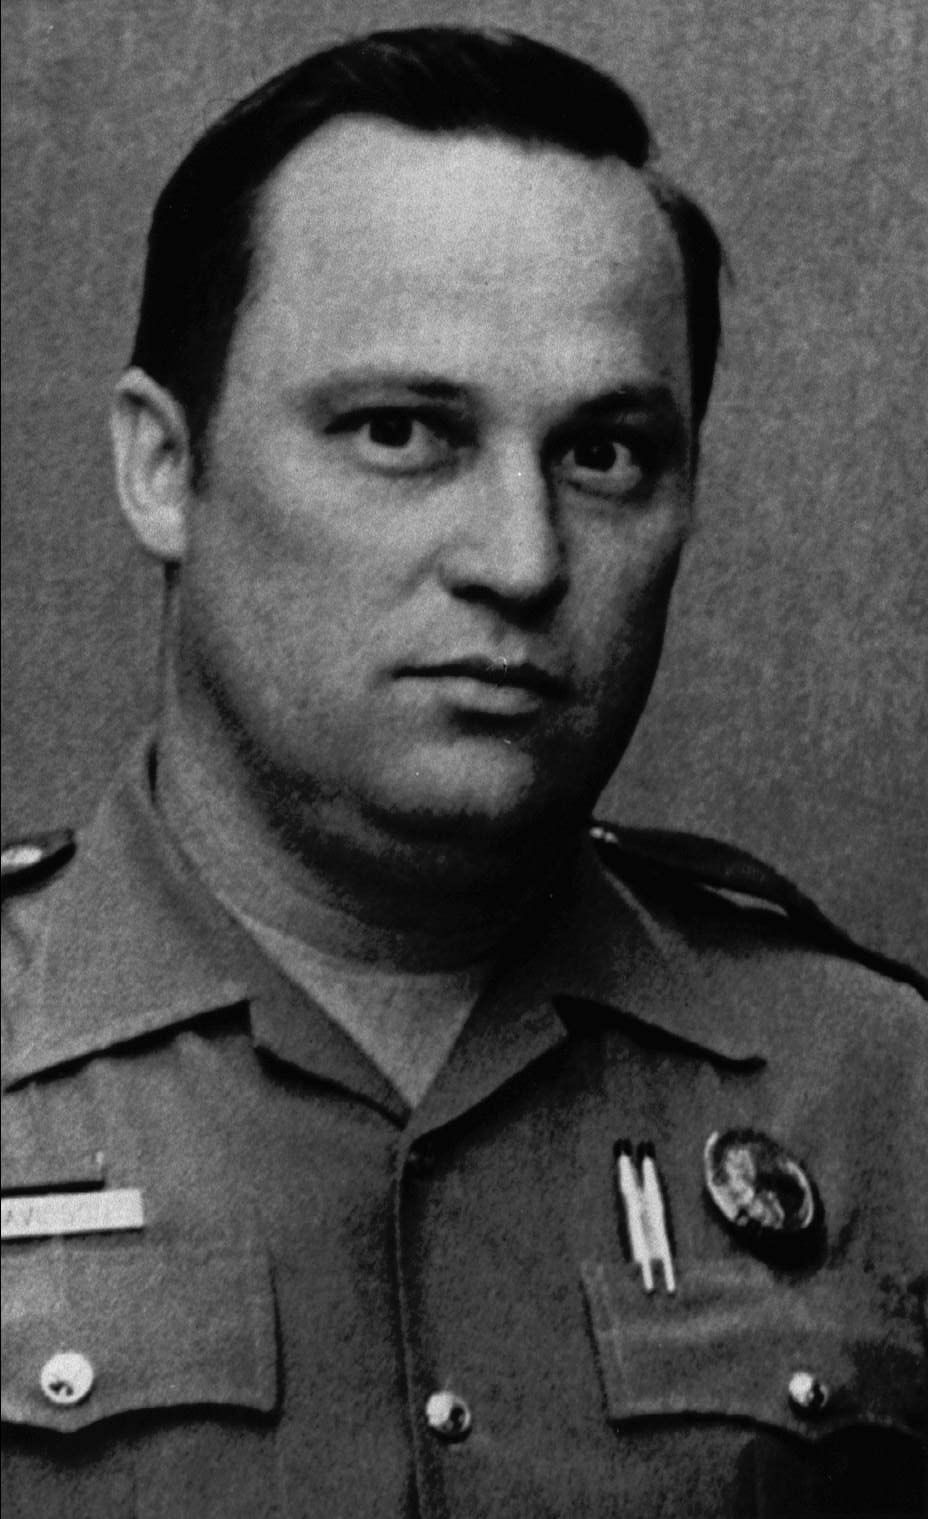 A 1985 file photo of Department of Public Safety Trooper Bill Davidson, 43, who died after being shot during a traffic stop in Jackson County. (Associated Press)